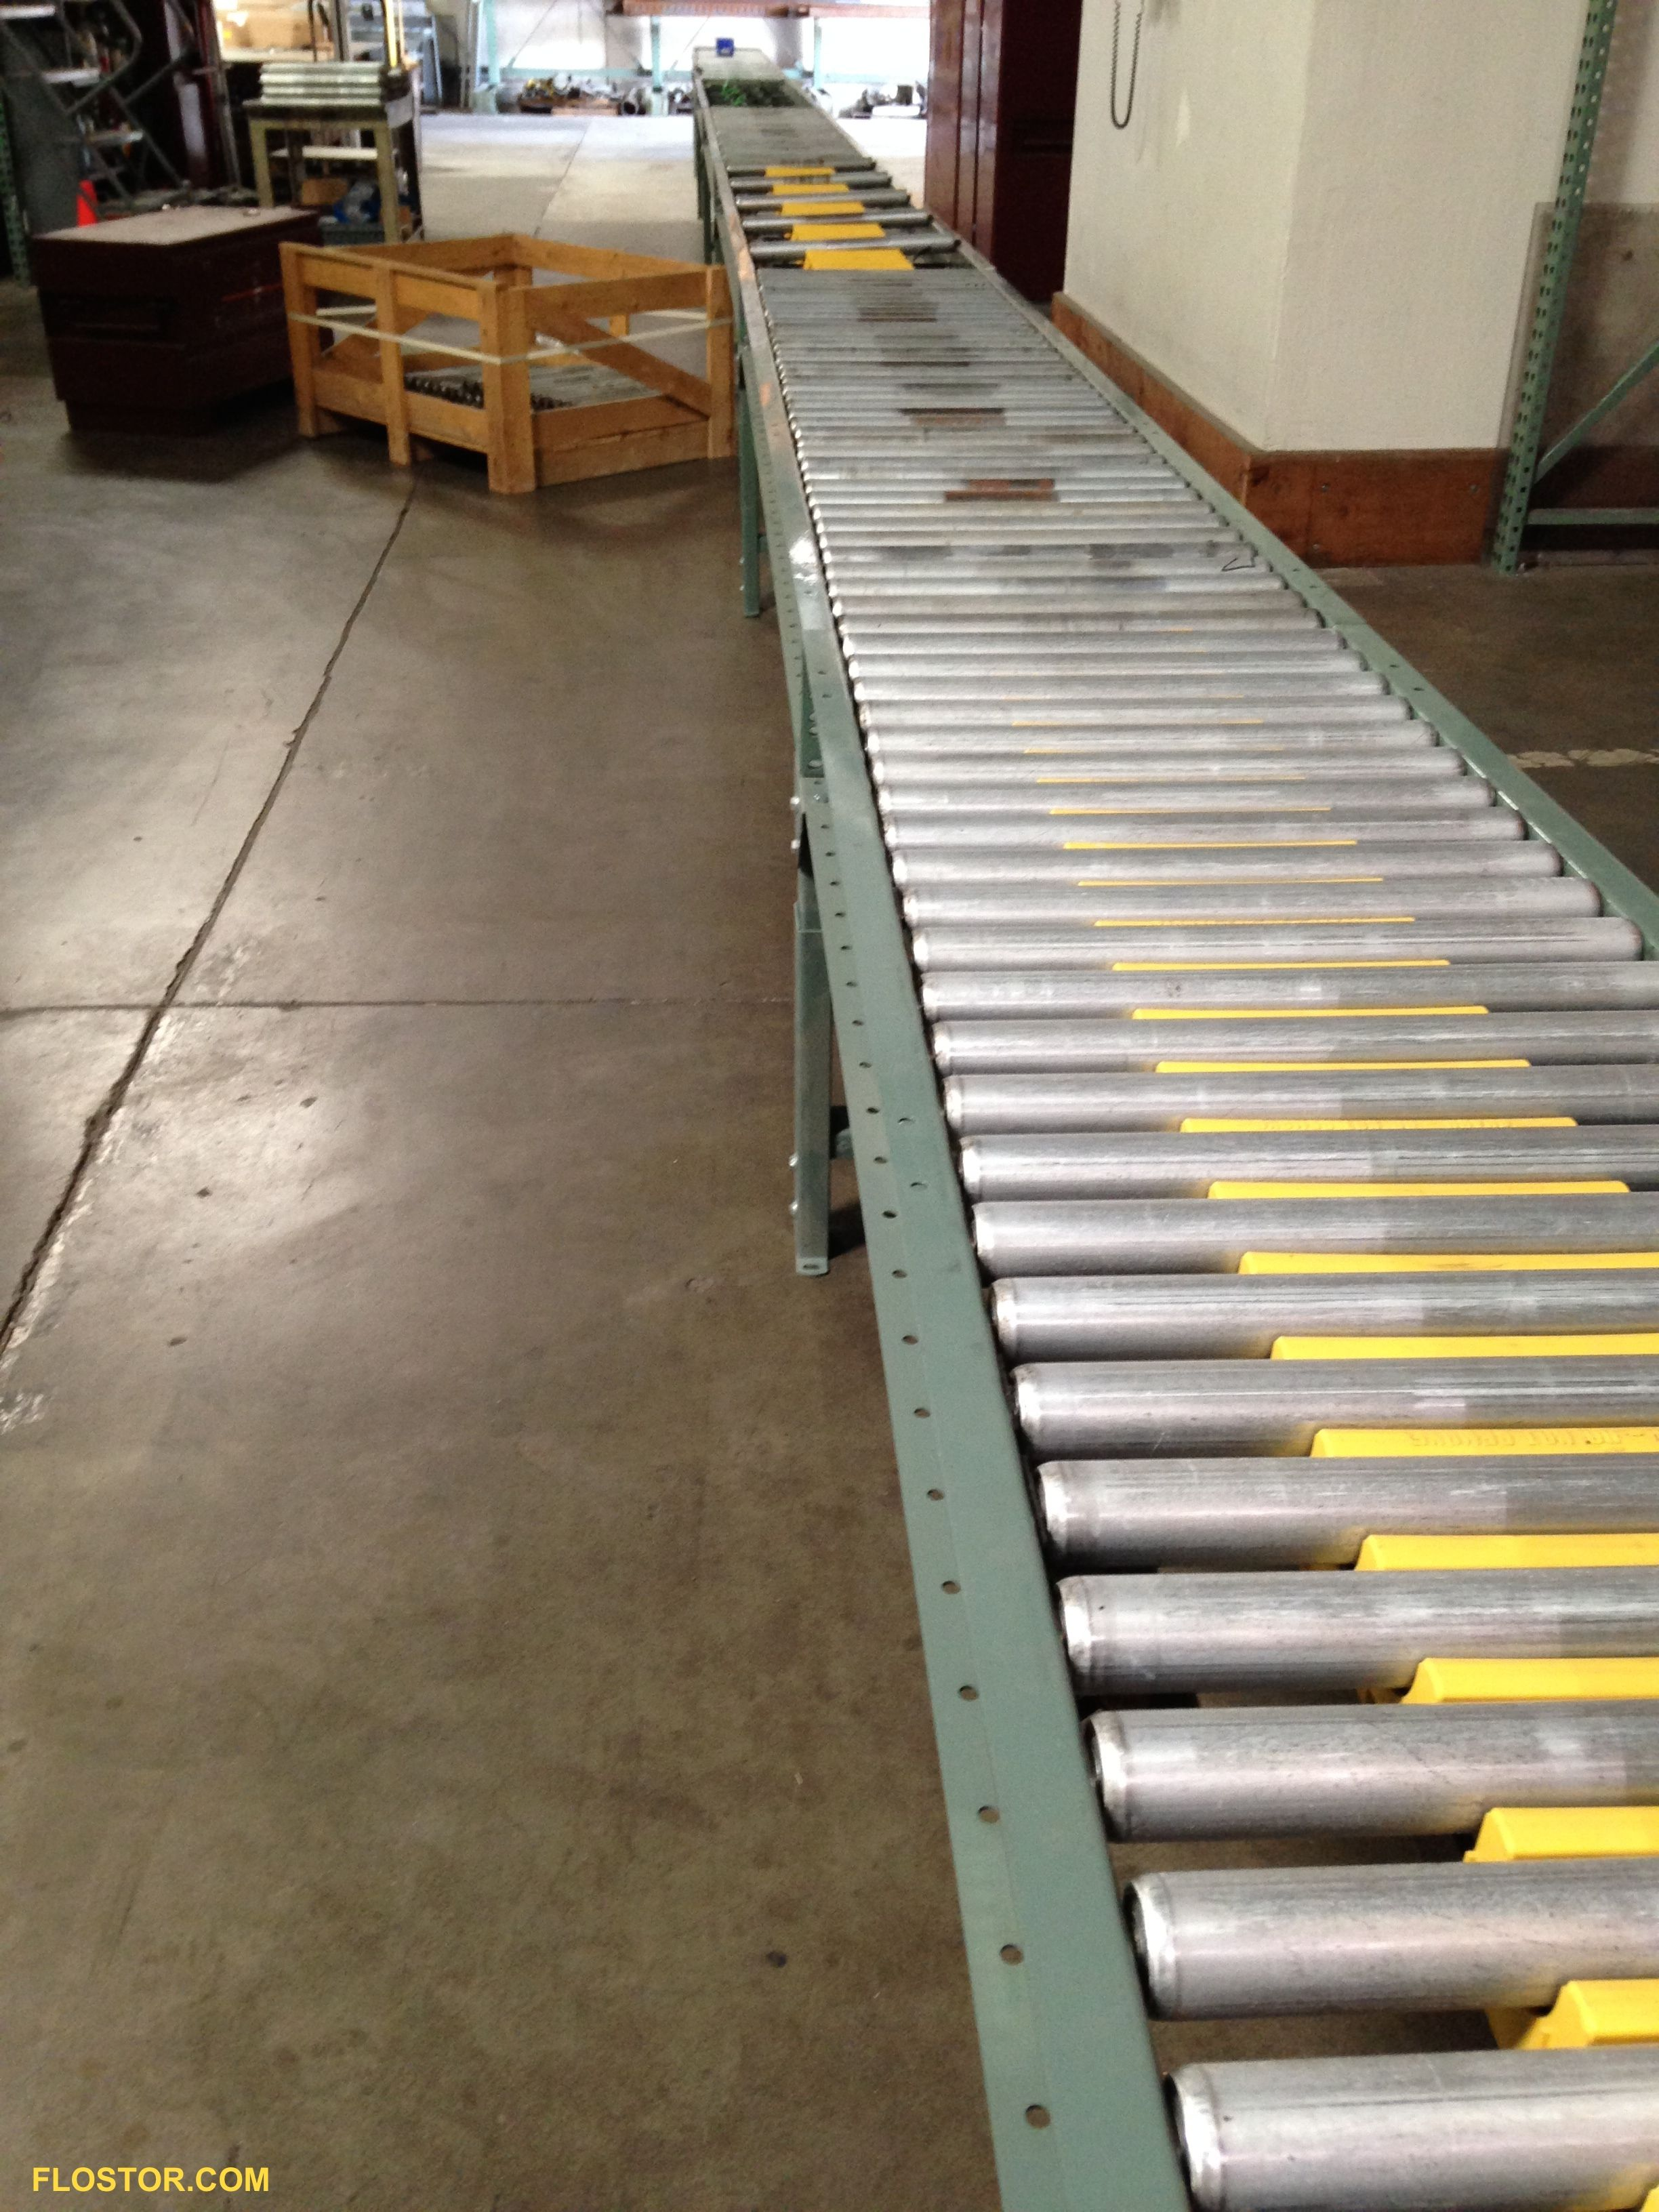 Conveyor length being assembled in the FloStor warehouse